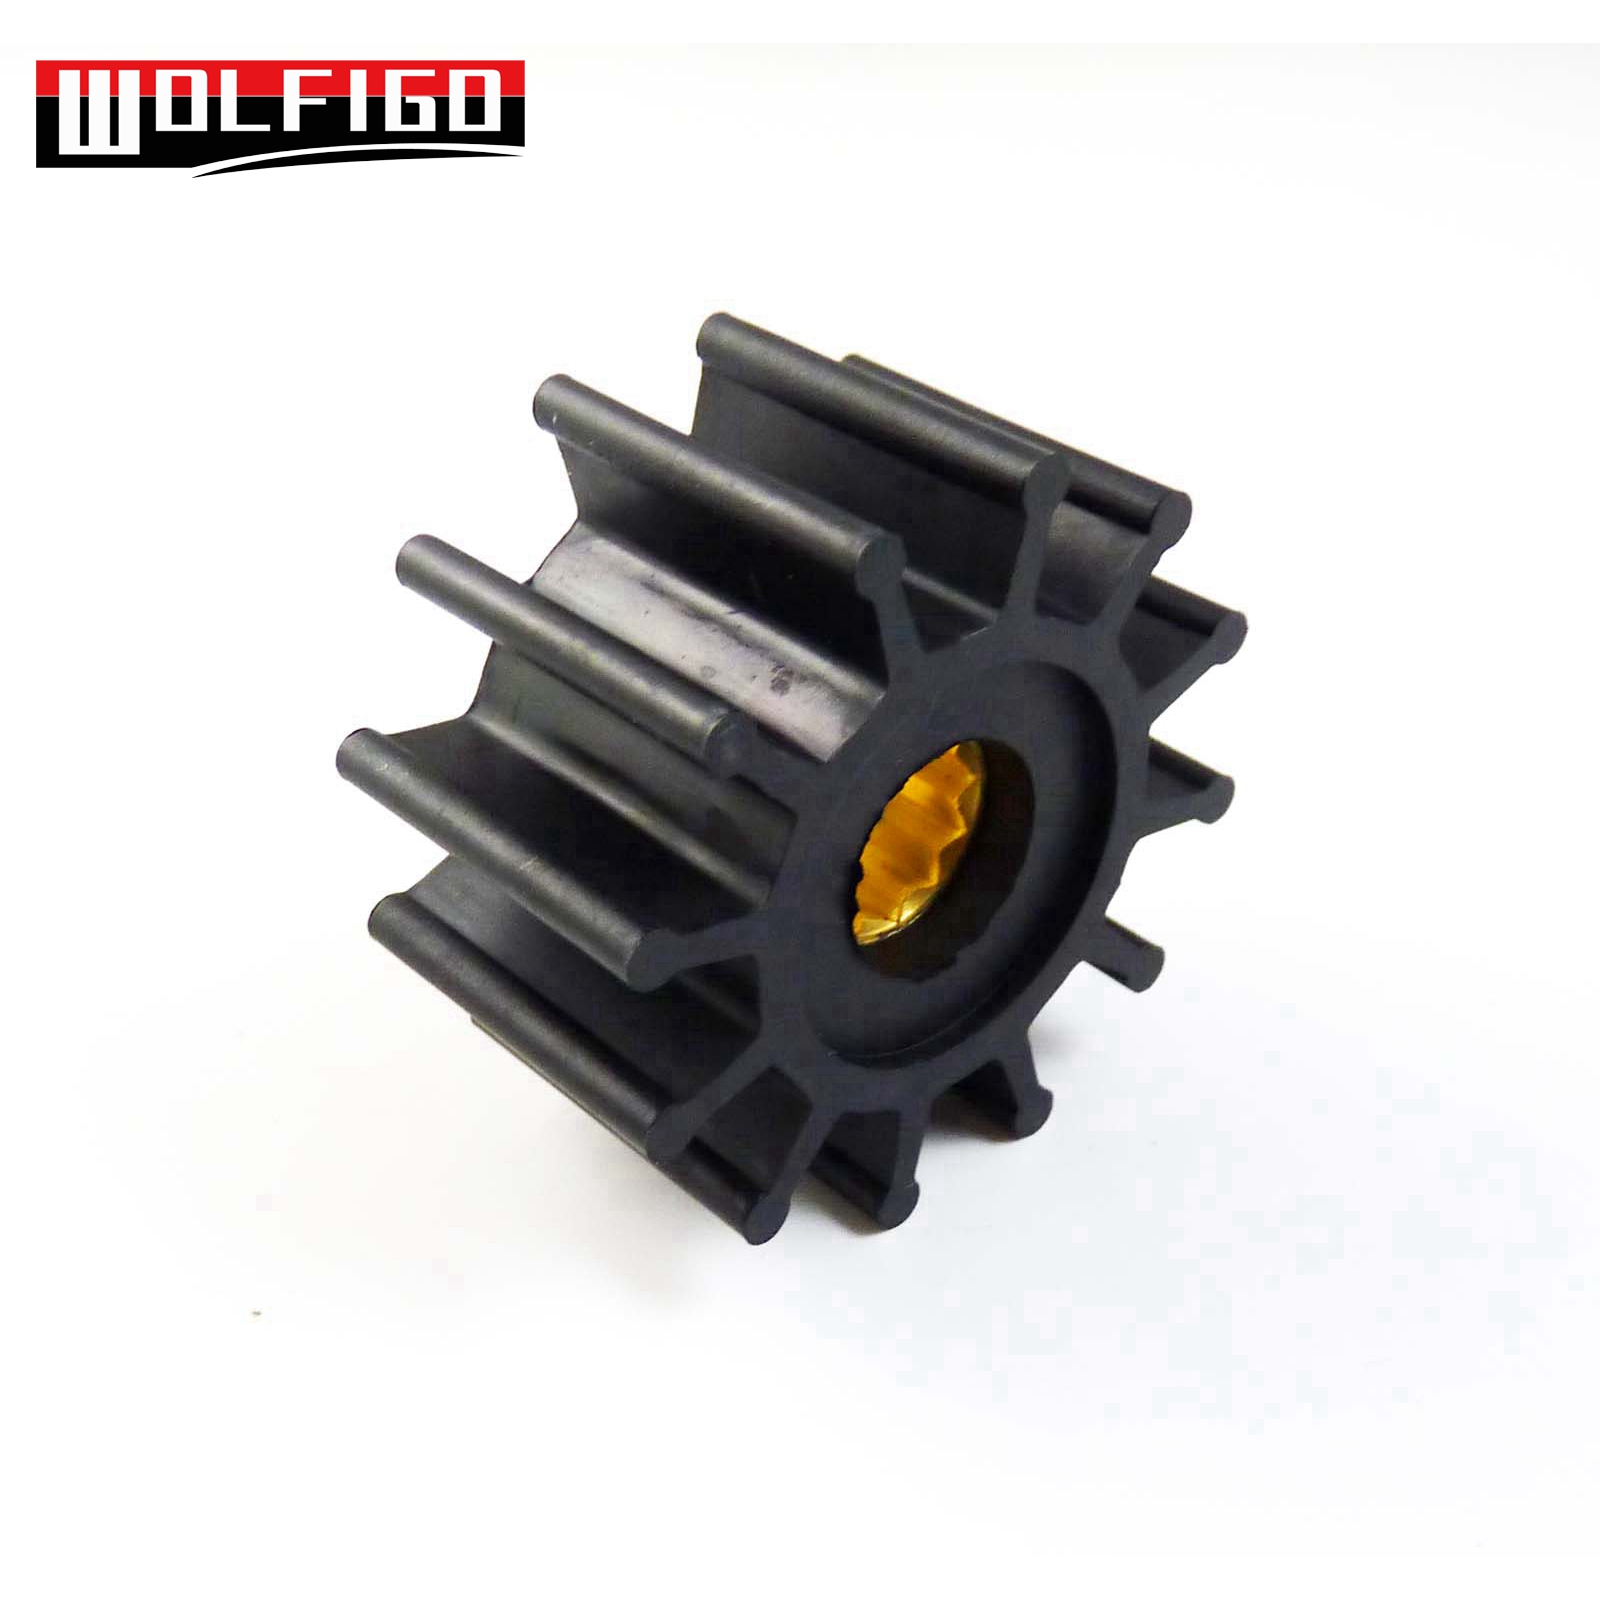 Wolfigo Water Pump Impeller Inboard Engine Cooling For Volvo Penta Aq260 Wiring Harness 825940 860203 3855546 3858256 3862281 21213660